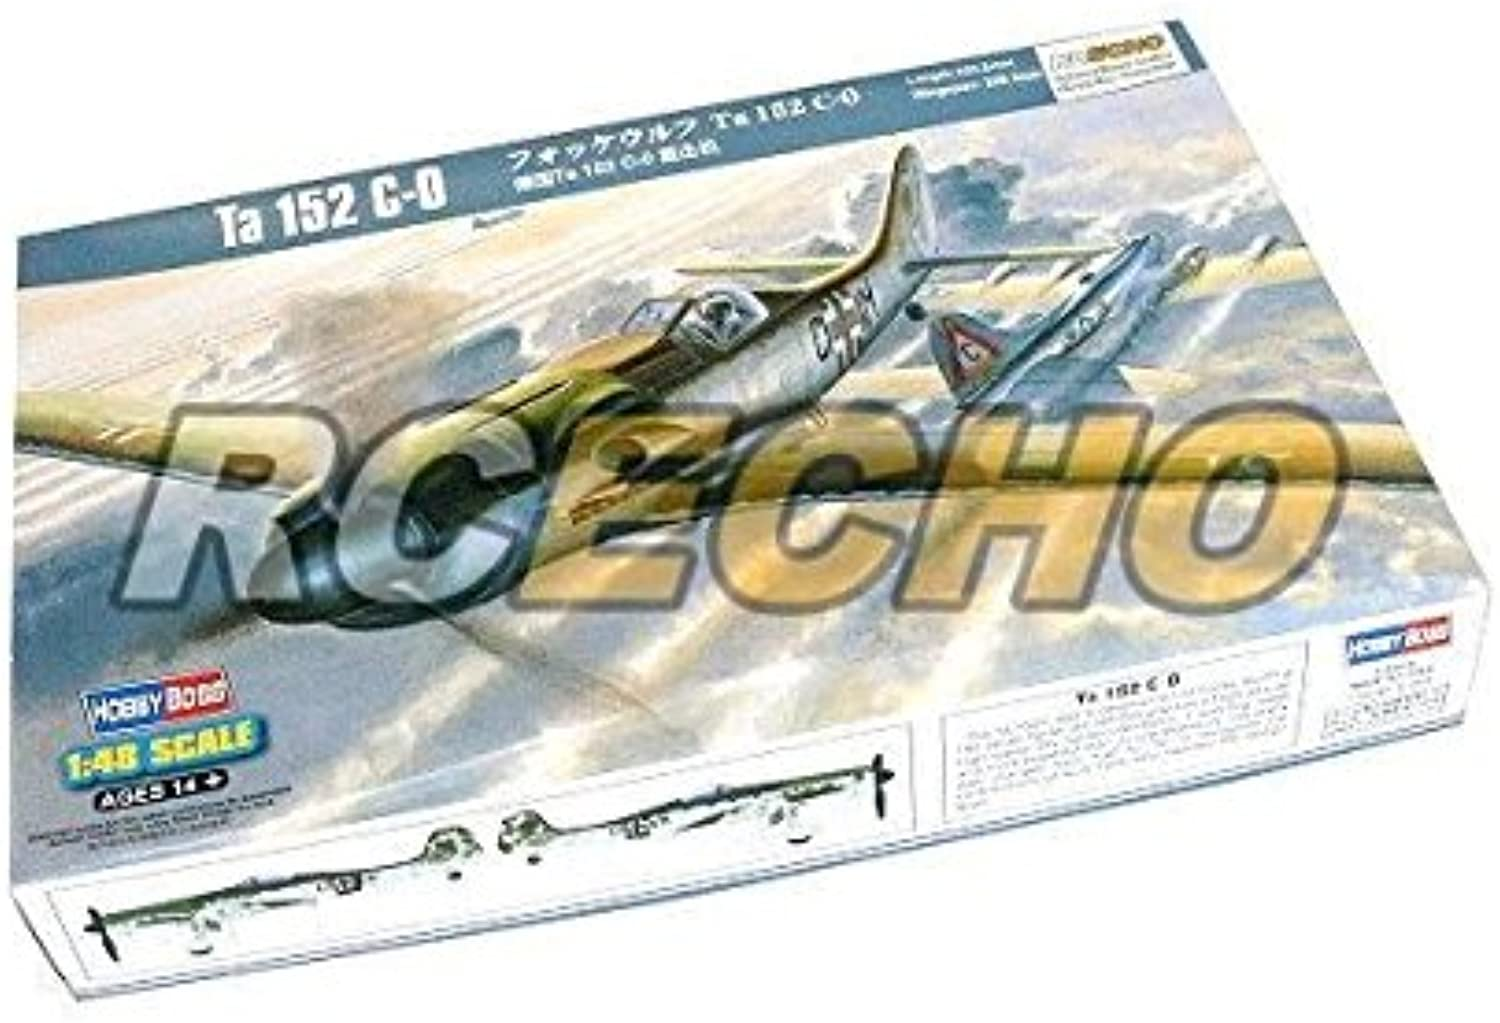 RCECHO 174; HOBBYBOSS Aircraft modello 1 48 Ta 152 C-0 Scale Hobby 81701 B1701 with 174; Full Version Apps edizione